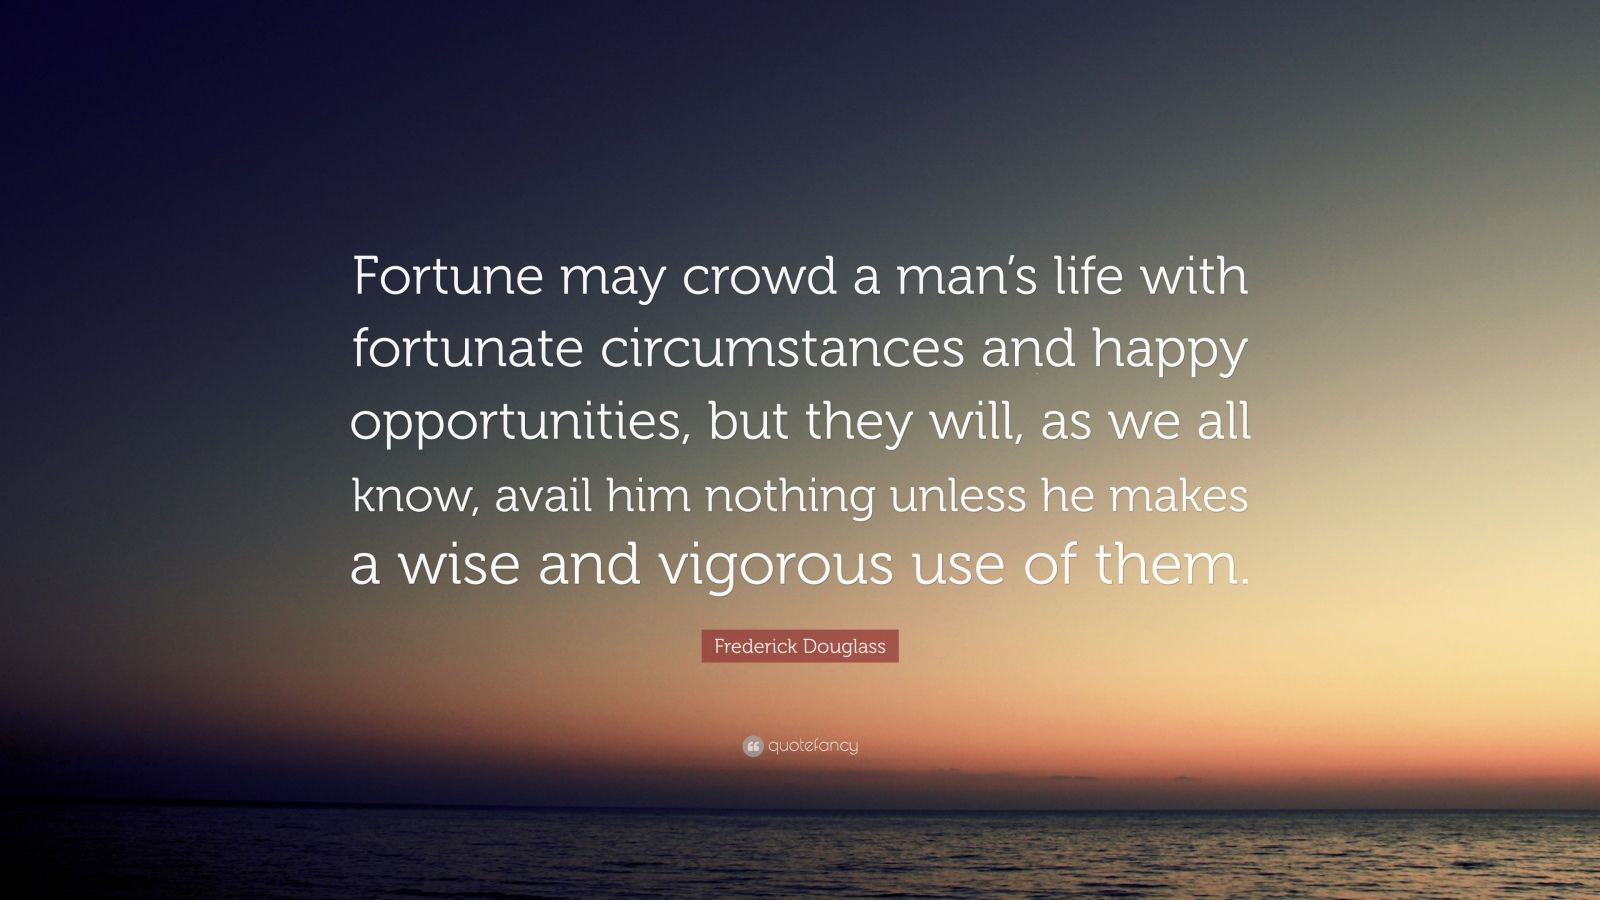 """Frederick Douglass Quote: """"Fortune may crowd a man's life with fortunate circumstances and happy opportunities, but they will, as we all know, avail him nothing unless he makes a wise and vigorous use of them."""""""